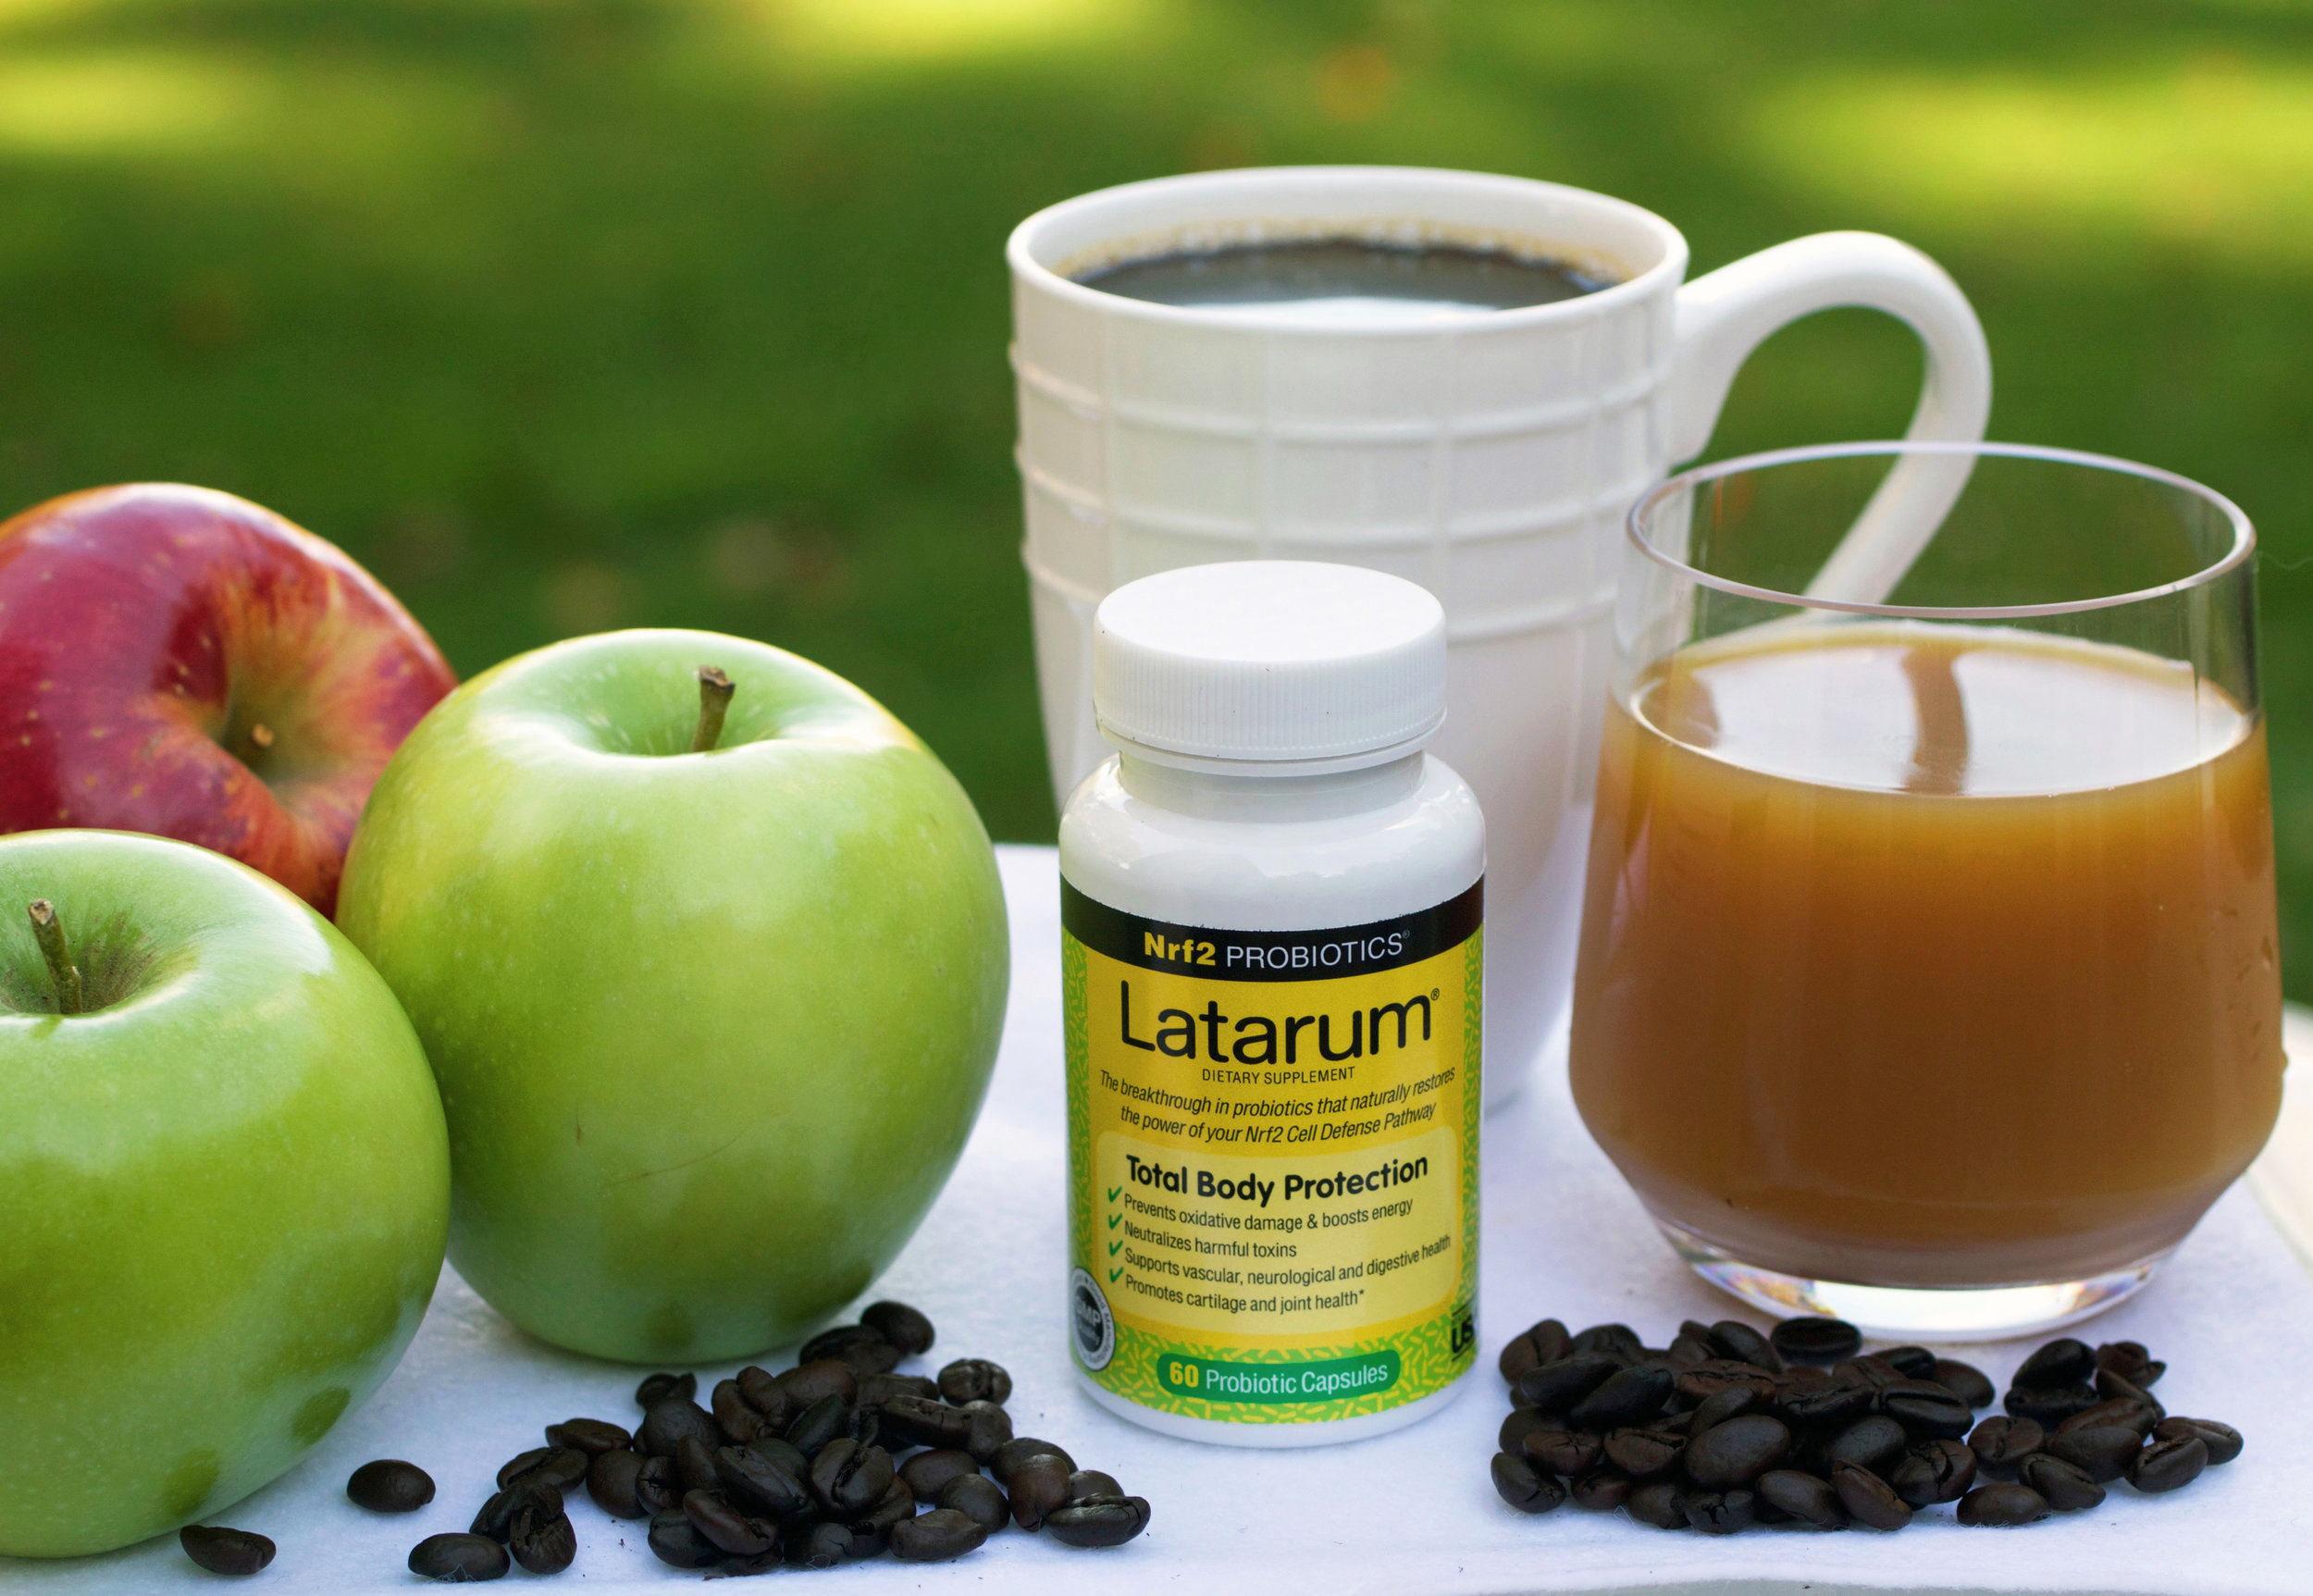 Take Latarum® twice a day, in combination with a diet that contains coffee, apples, apple cider, or other apple products, or a diet that's rich in other fruits and vegetables,